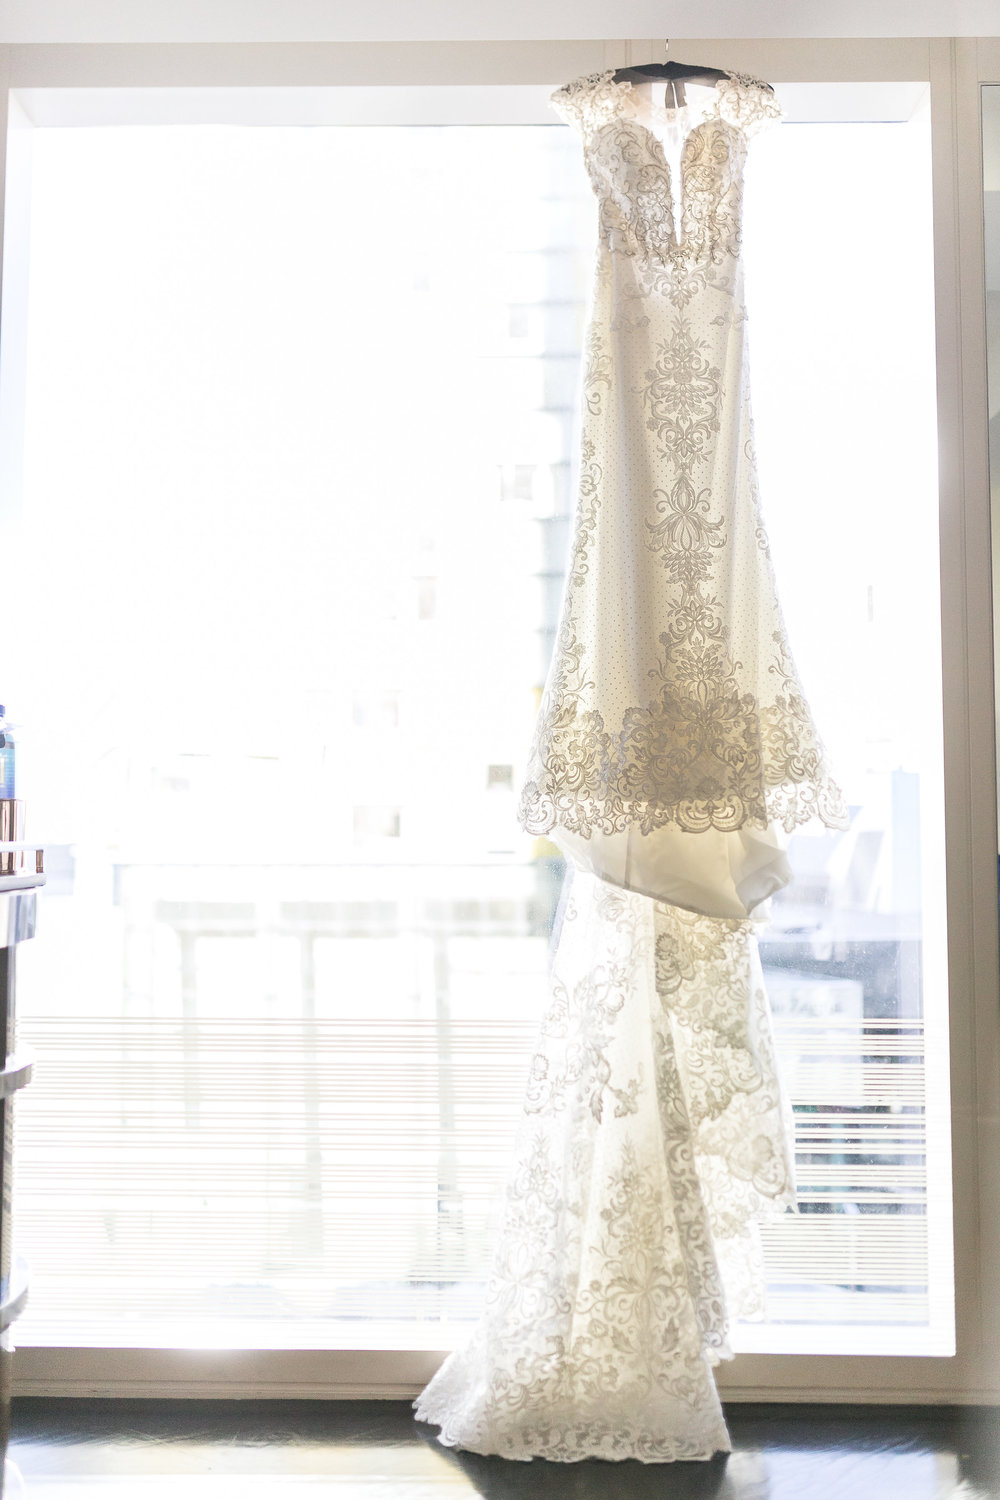 lace wedding dress.  Wedding Planner:  Andrea Eppolito Events  |   Photography  Brian Leahy   |  Videography  HOO Films   |  Venue & Catering:  Mandarin Oriental  / Waldorf Astoria |  Floral & Decor:  Destinations by Design    |  Lighting:  LED Unplugged  |  Music:  DJ Breeze II   |  Hair & Make Up:  Amelia C & Co